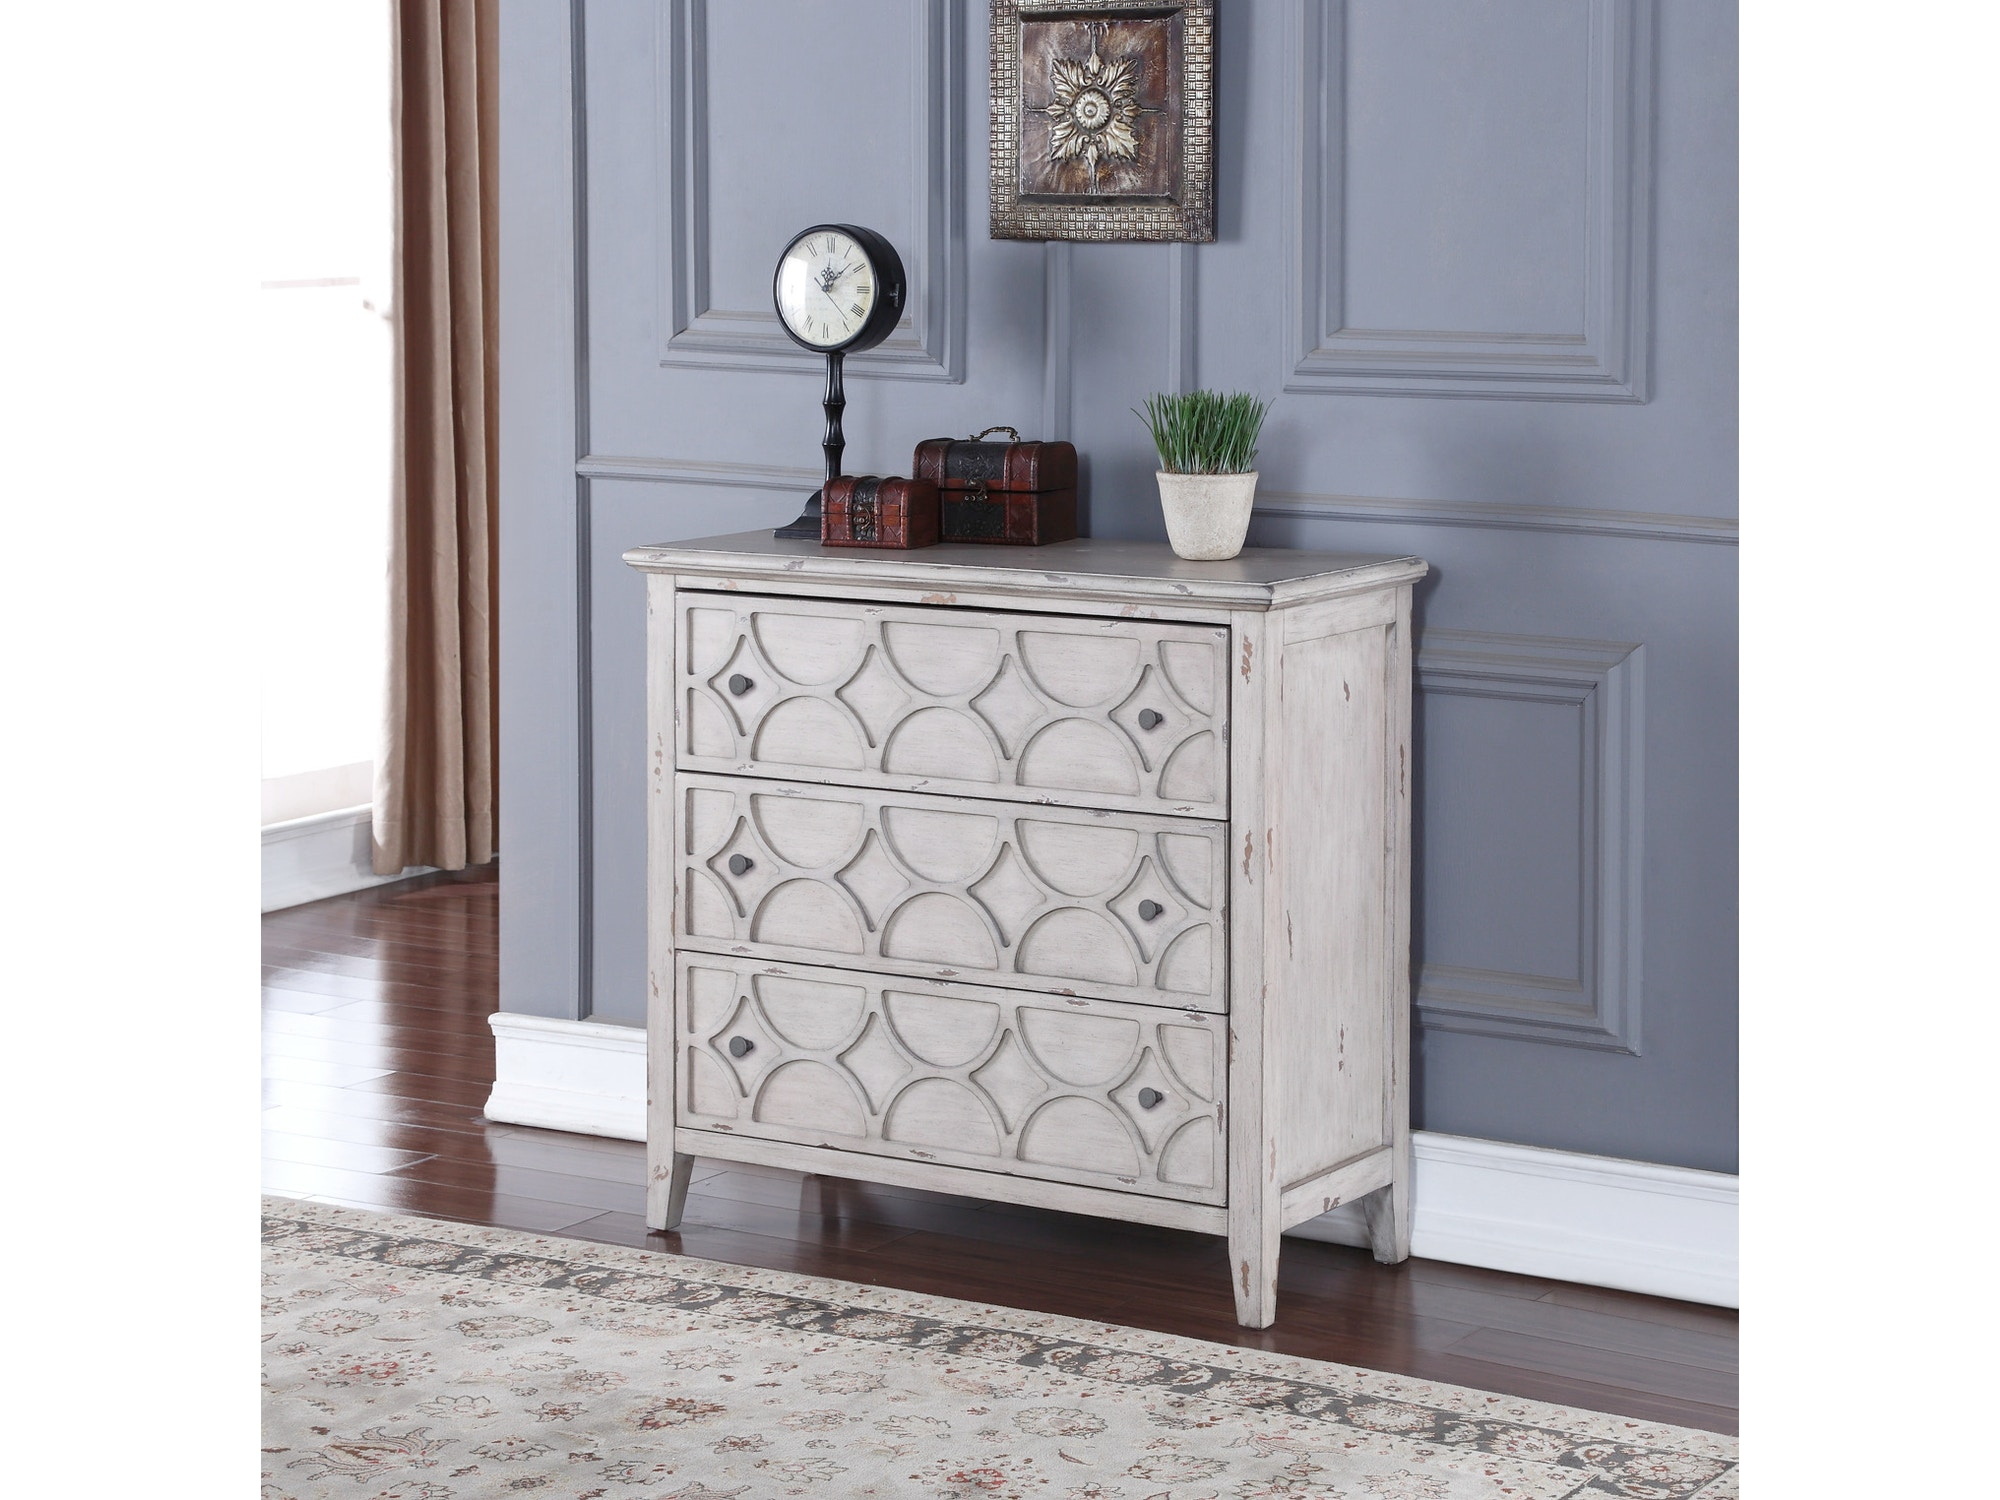 New Classic Home Furnishings Inc. Living Room Chests and Dressers ...